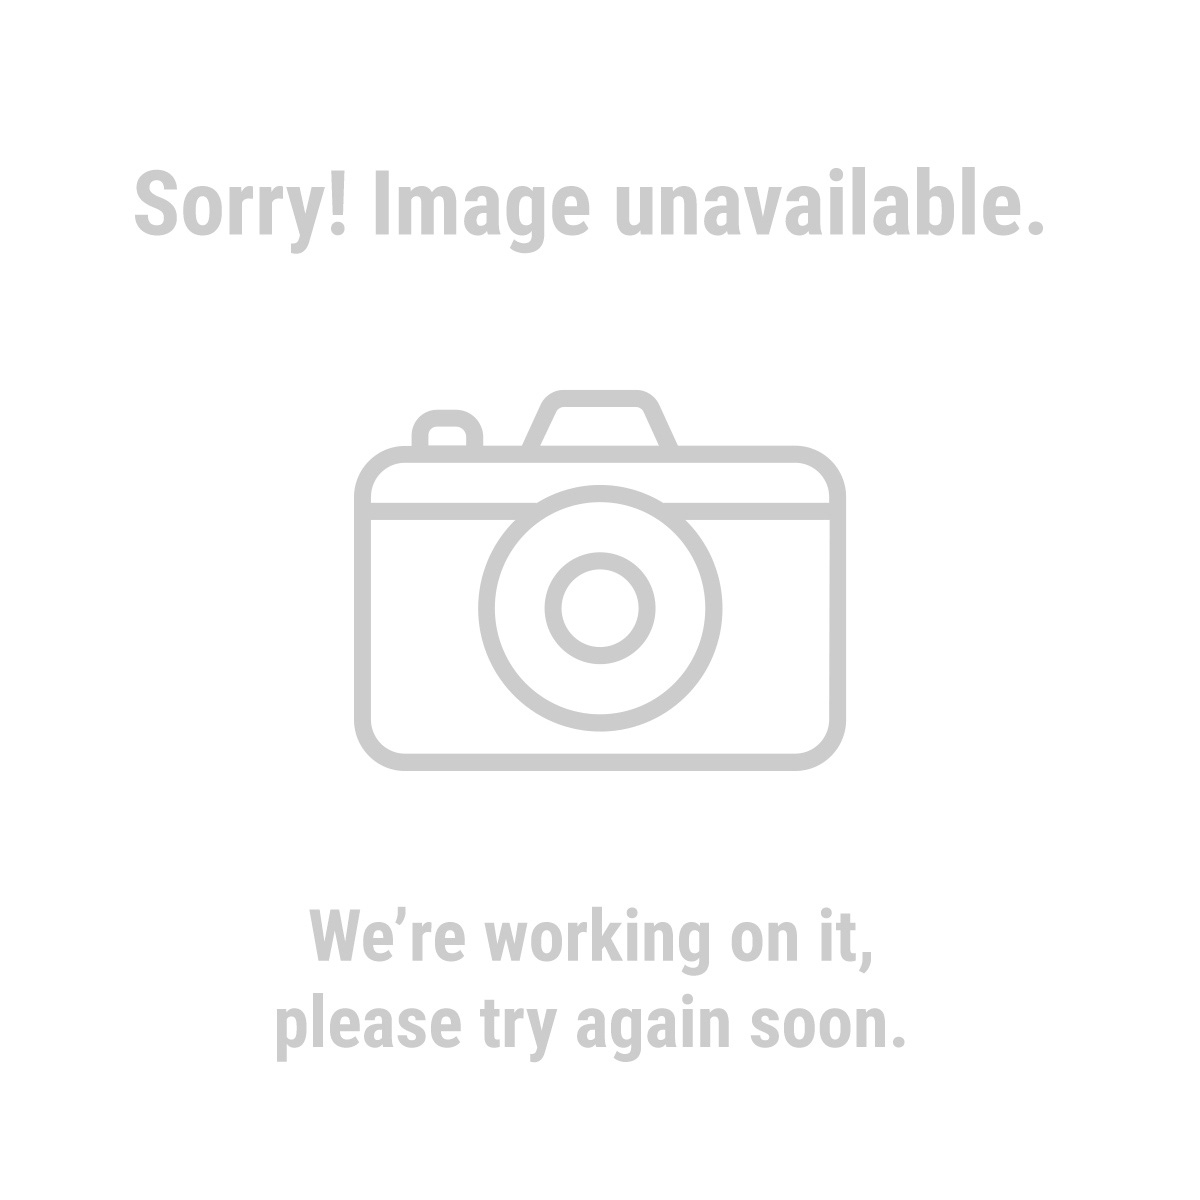 """Moly Carb 38534 7-1/4"""", 24 Tooth Molybdenum Tipped Circular Saw Blade"""